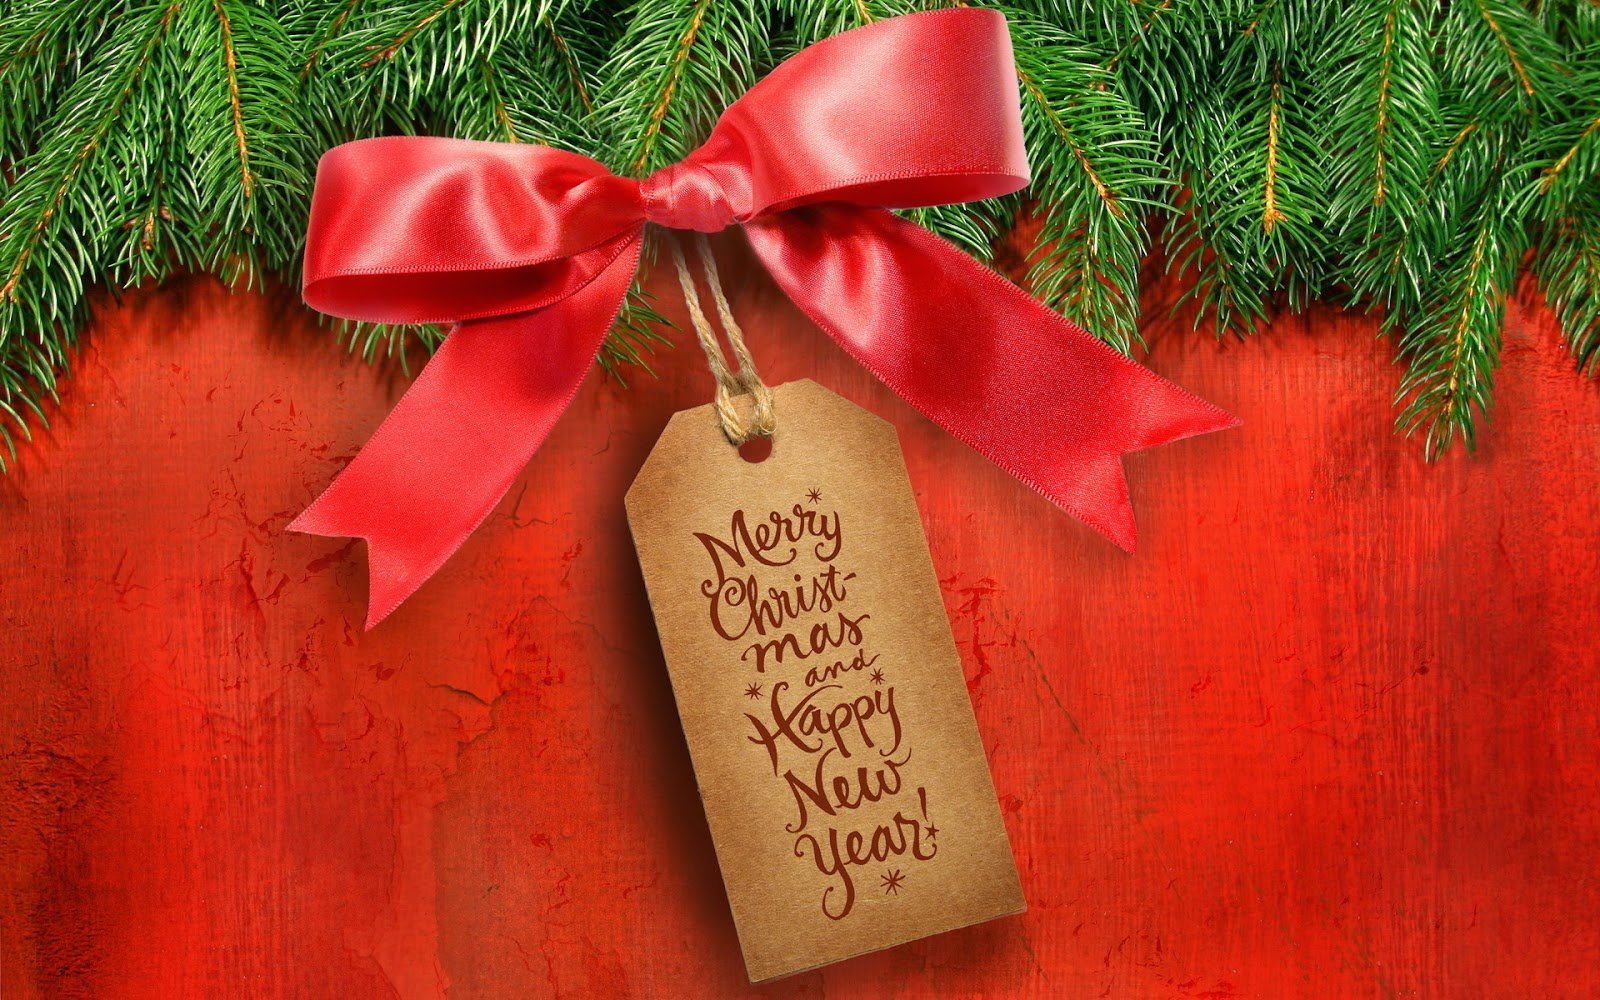 Merry-Christmas-and-happy-new-year-gift-tag-HD-image-picture.jpg